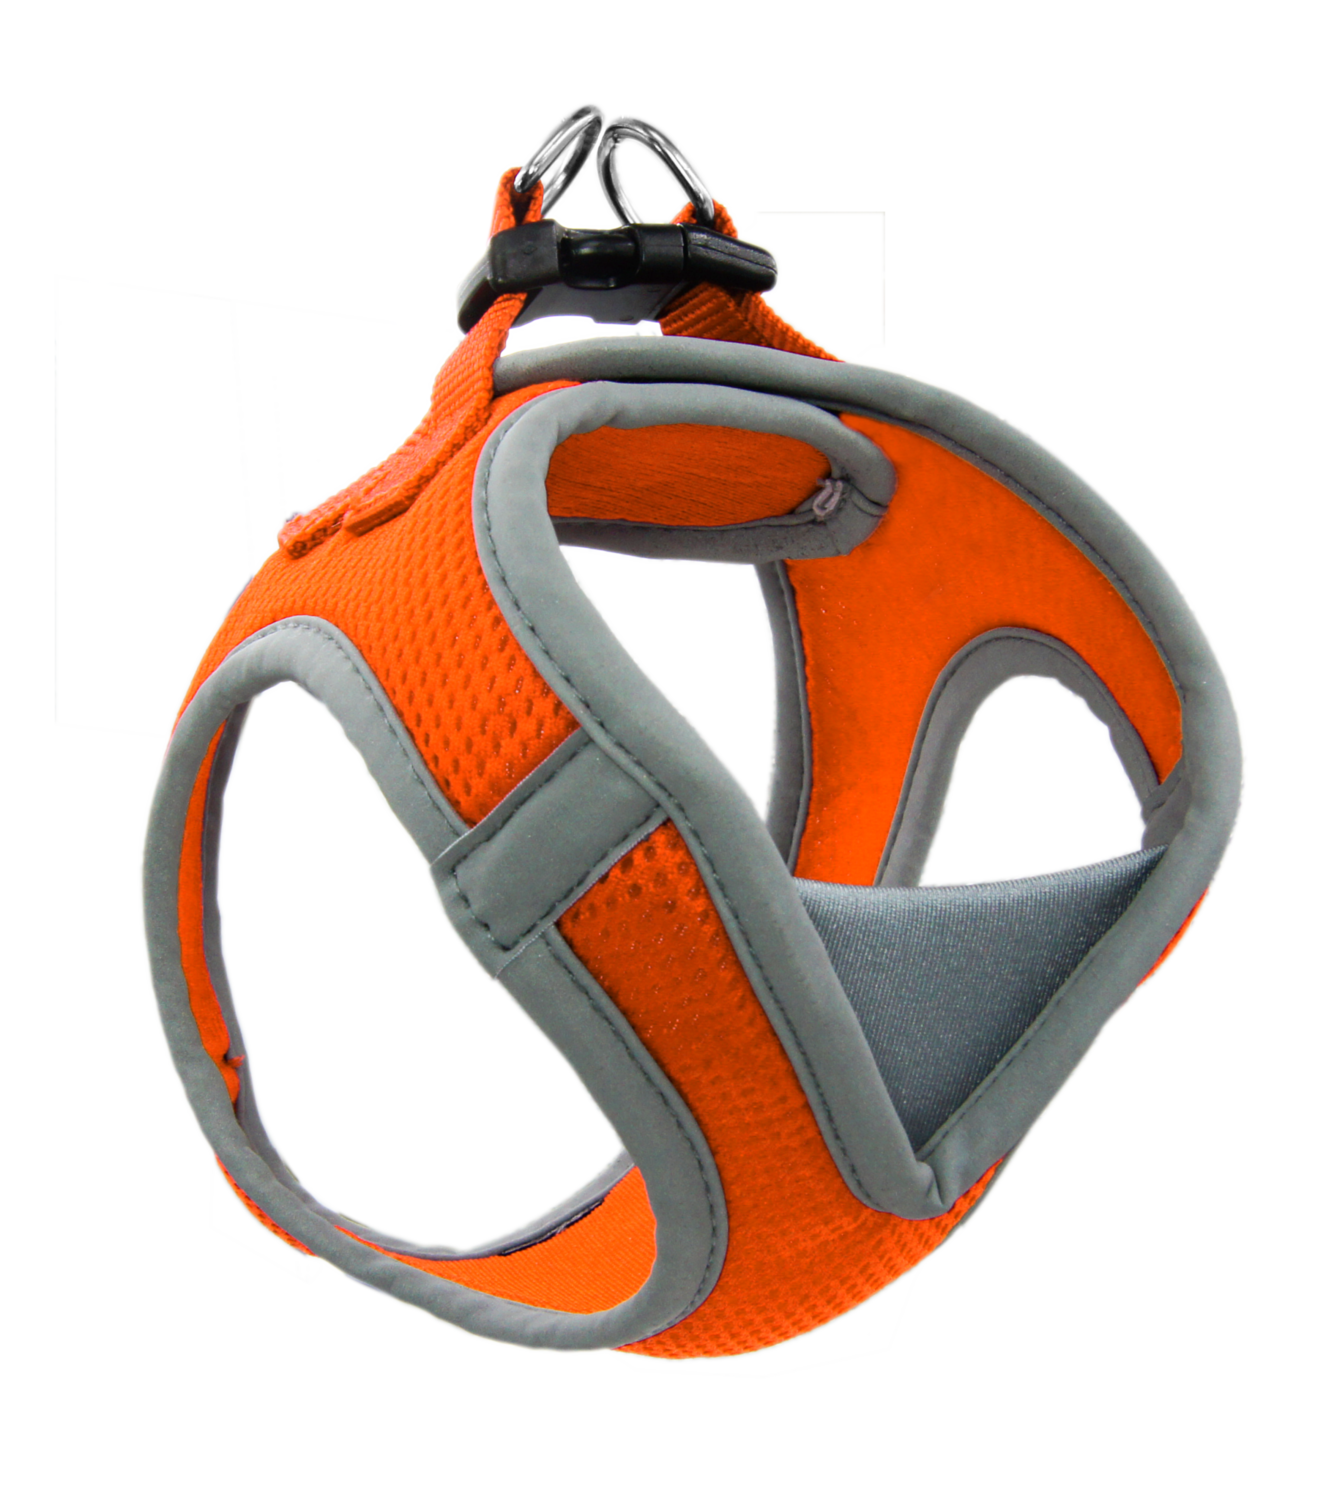 Athletica Quick Fit V Mesh Harness (LARGE)